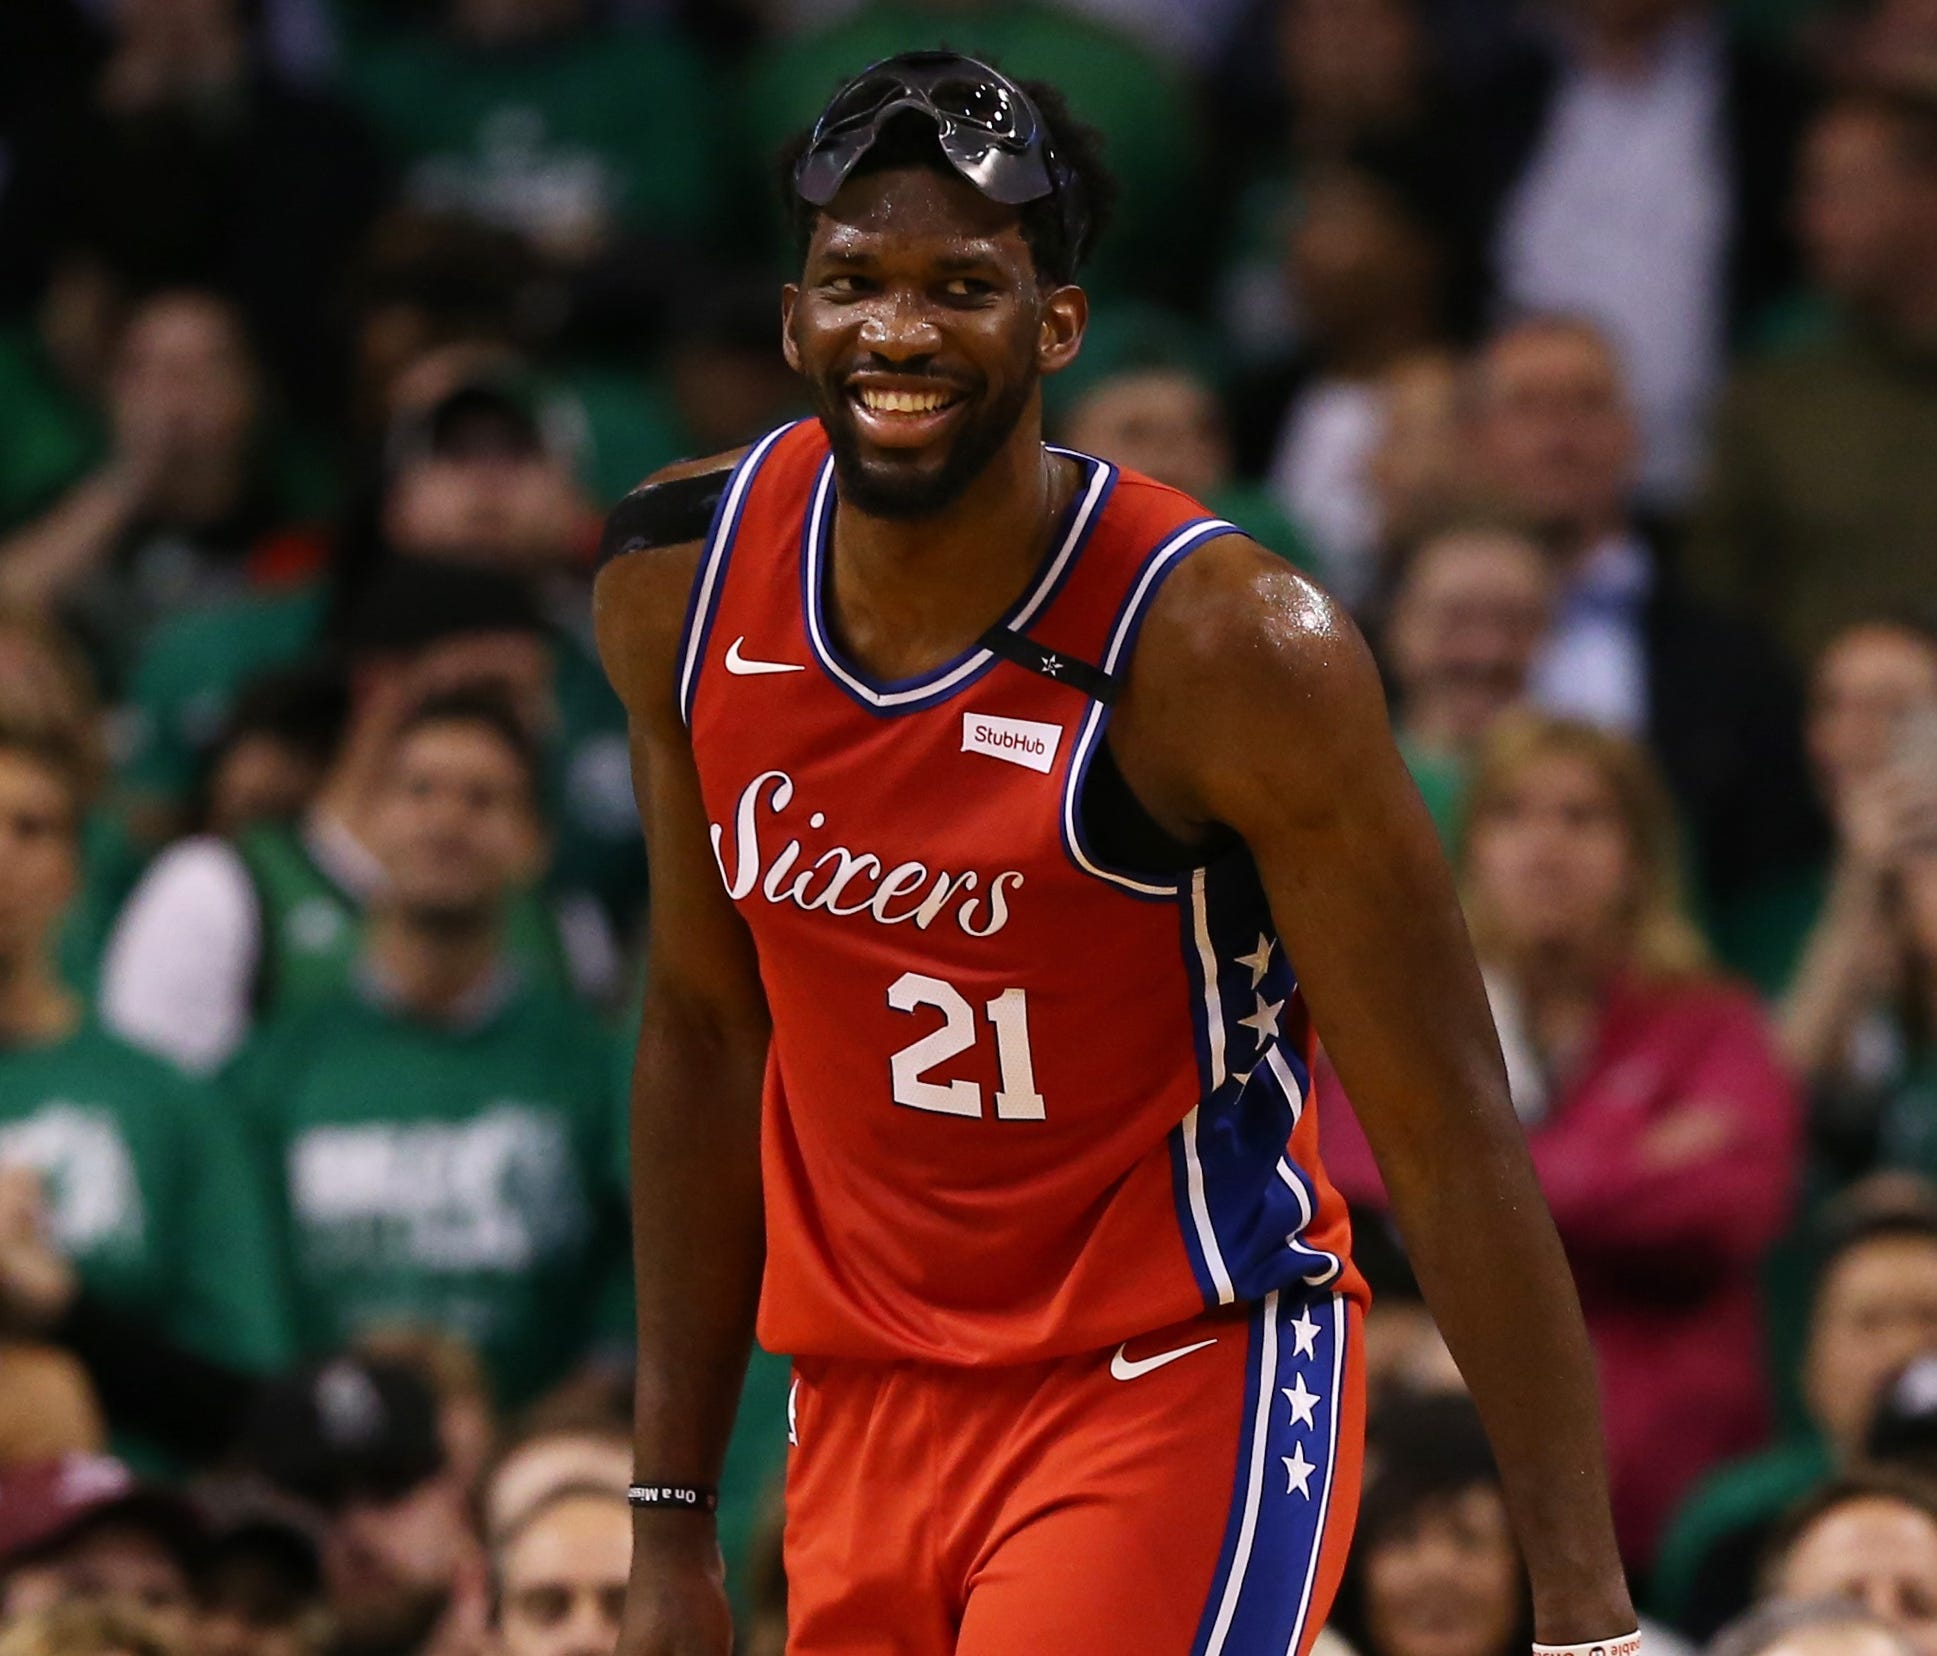 Joel Embiid's game-high 31 points weren't enough for the 76ers in Game 1 against the Celtics.